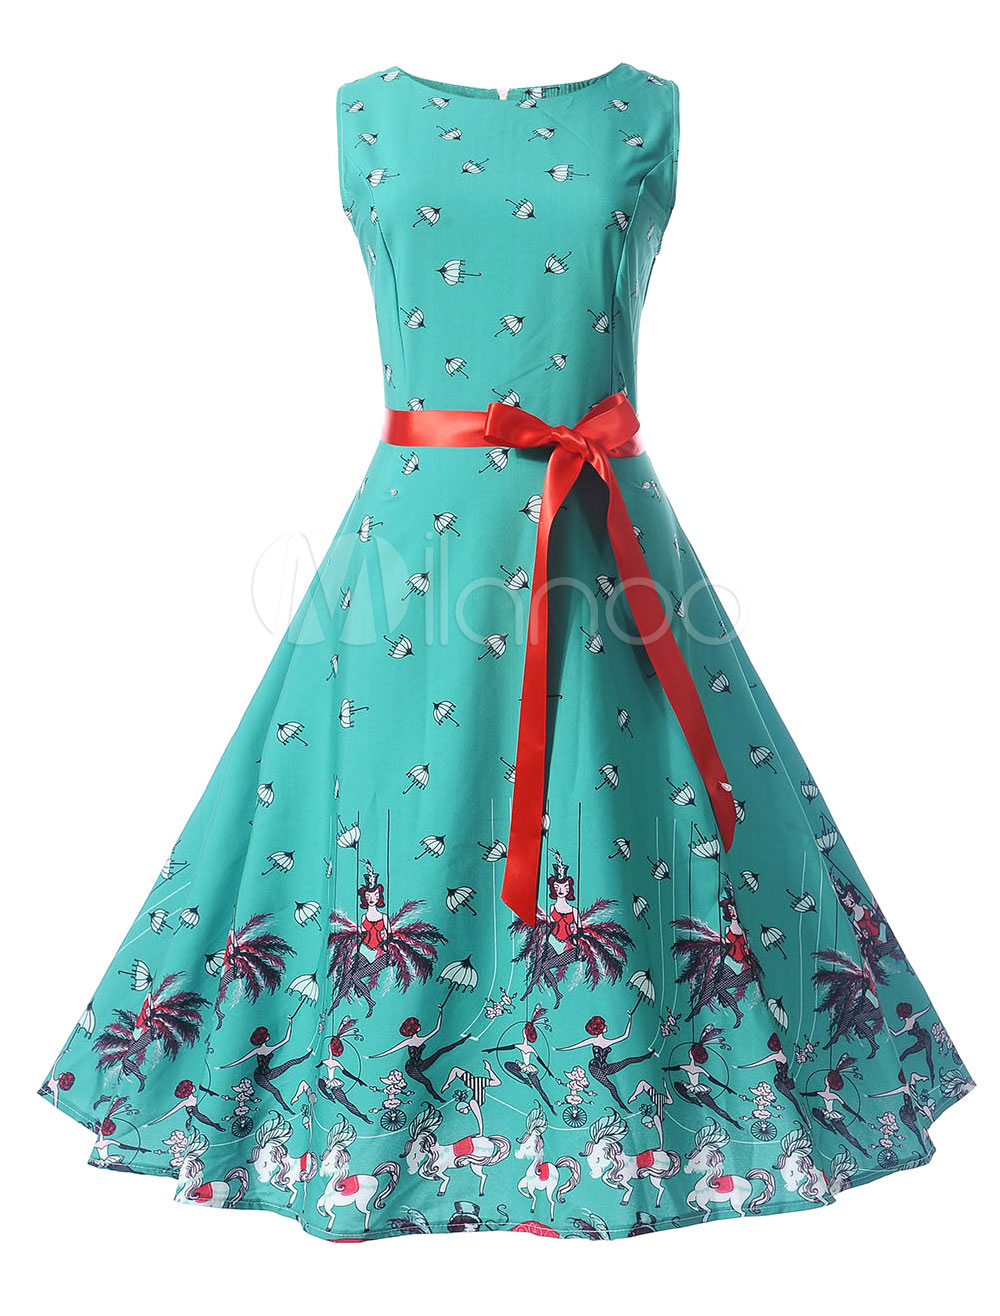 Green Vintage Dress Round Neck Sleeveless Floral Print Women's Summer Dresses